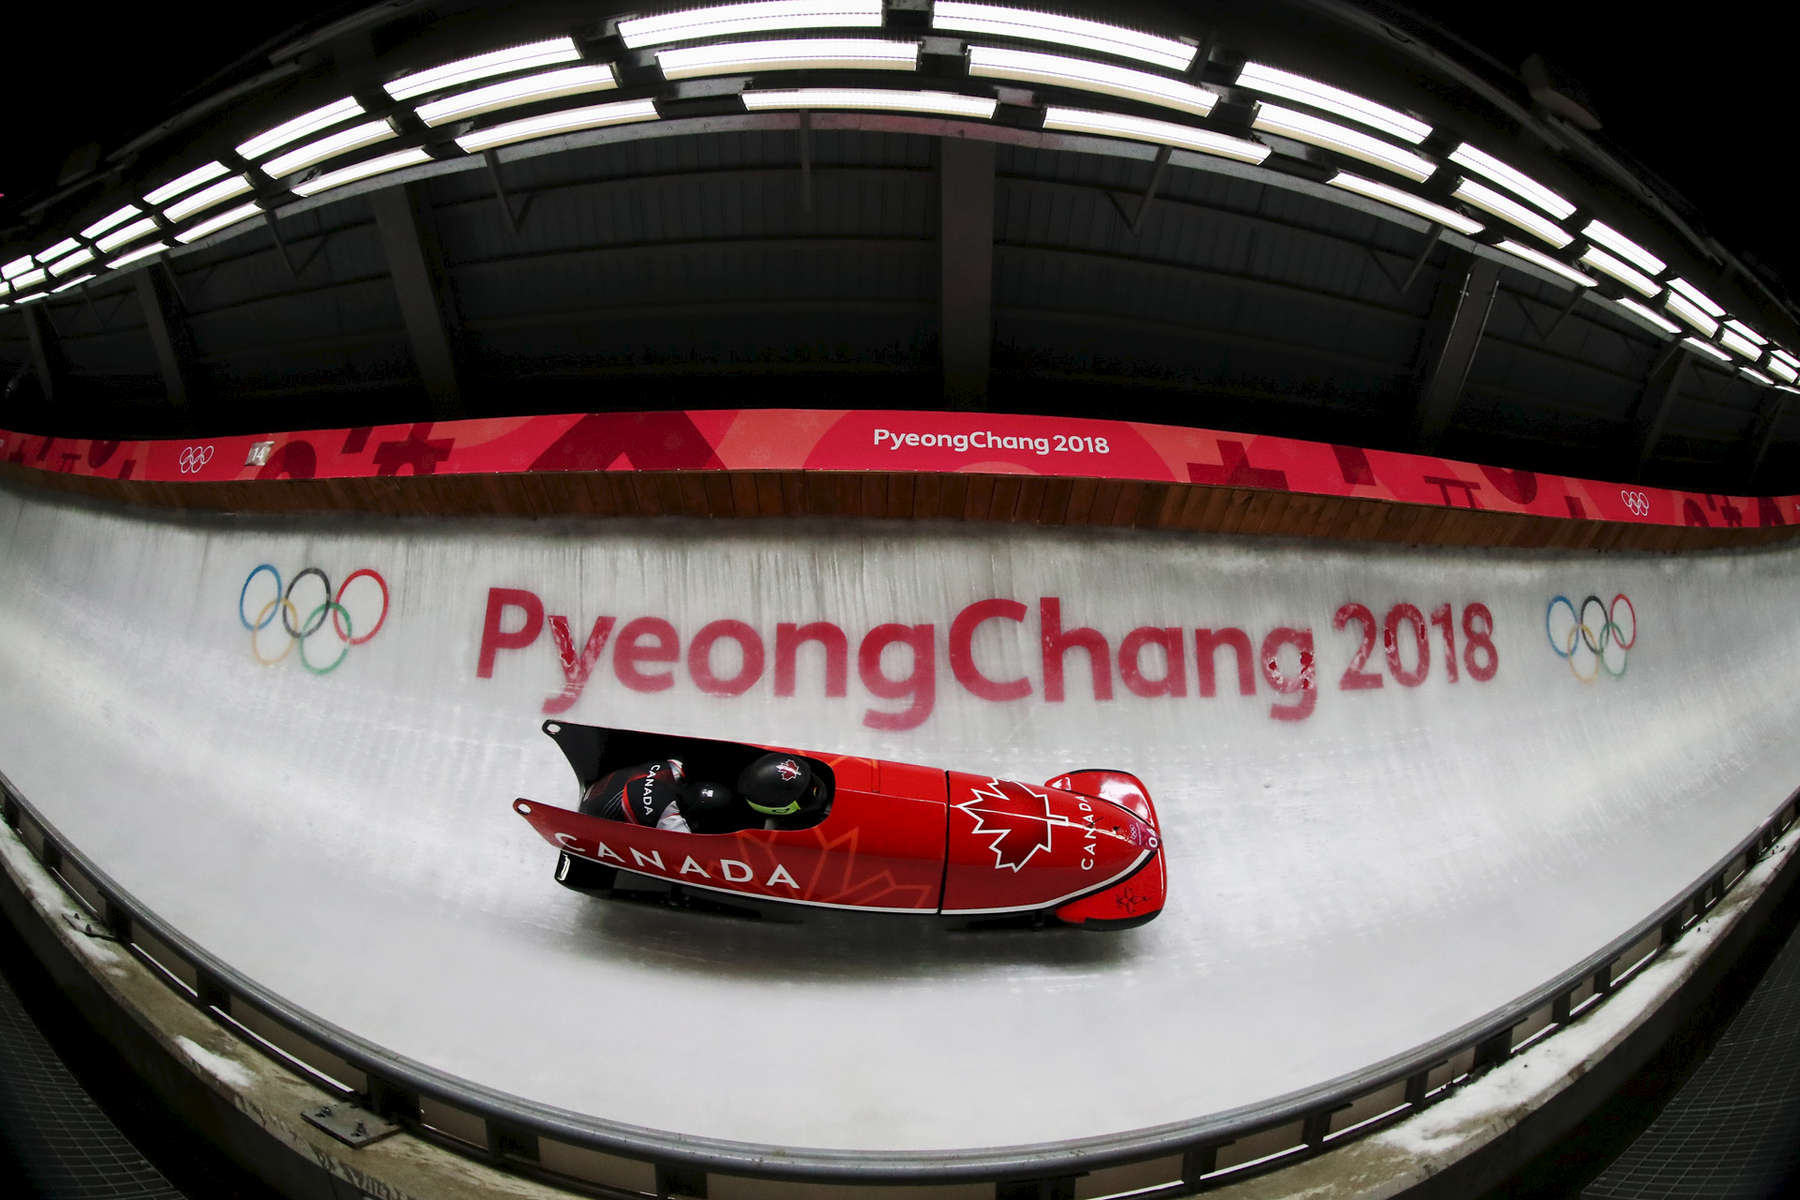 Kaillie Humphries and Phylicia George of Canada slide during the Women's Bobsleigh heats at the Olympic Sliding Centre on day eleven of the PyeongChang 2018 Winter Olympic Games at the Olympic Sliding Centre on February 20, 2018 in Pyeongchang-gun, South Korea.